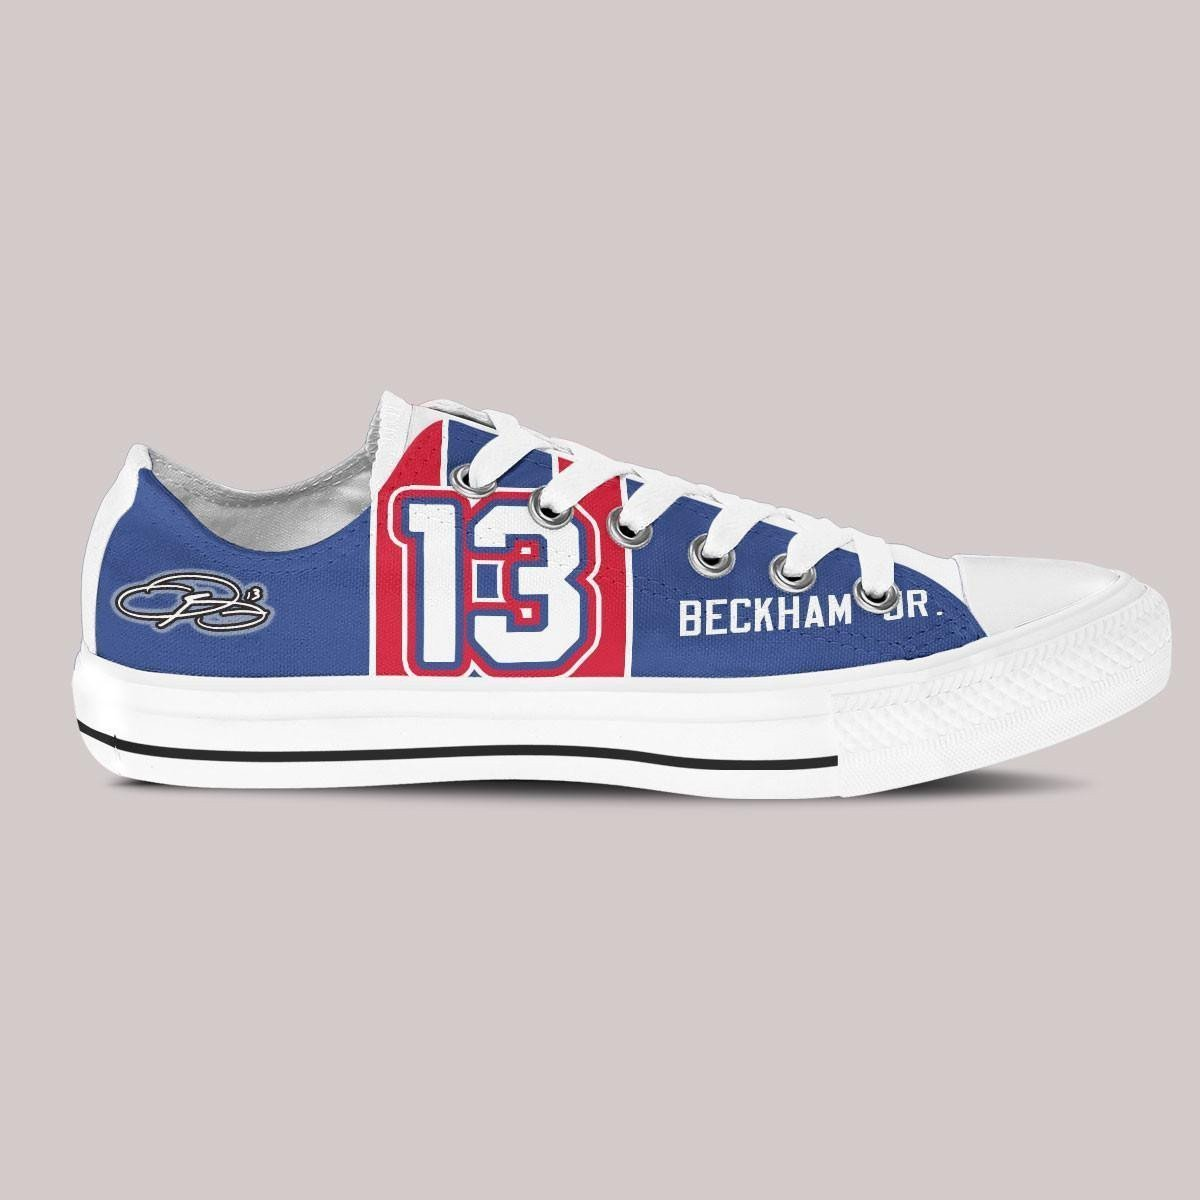 odell beckham jr ladies low cut sneakers